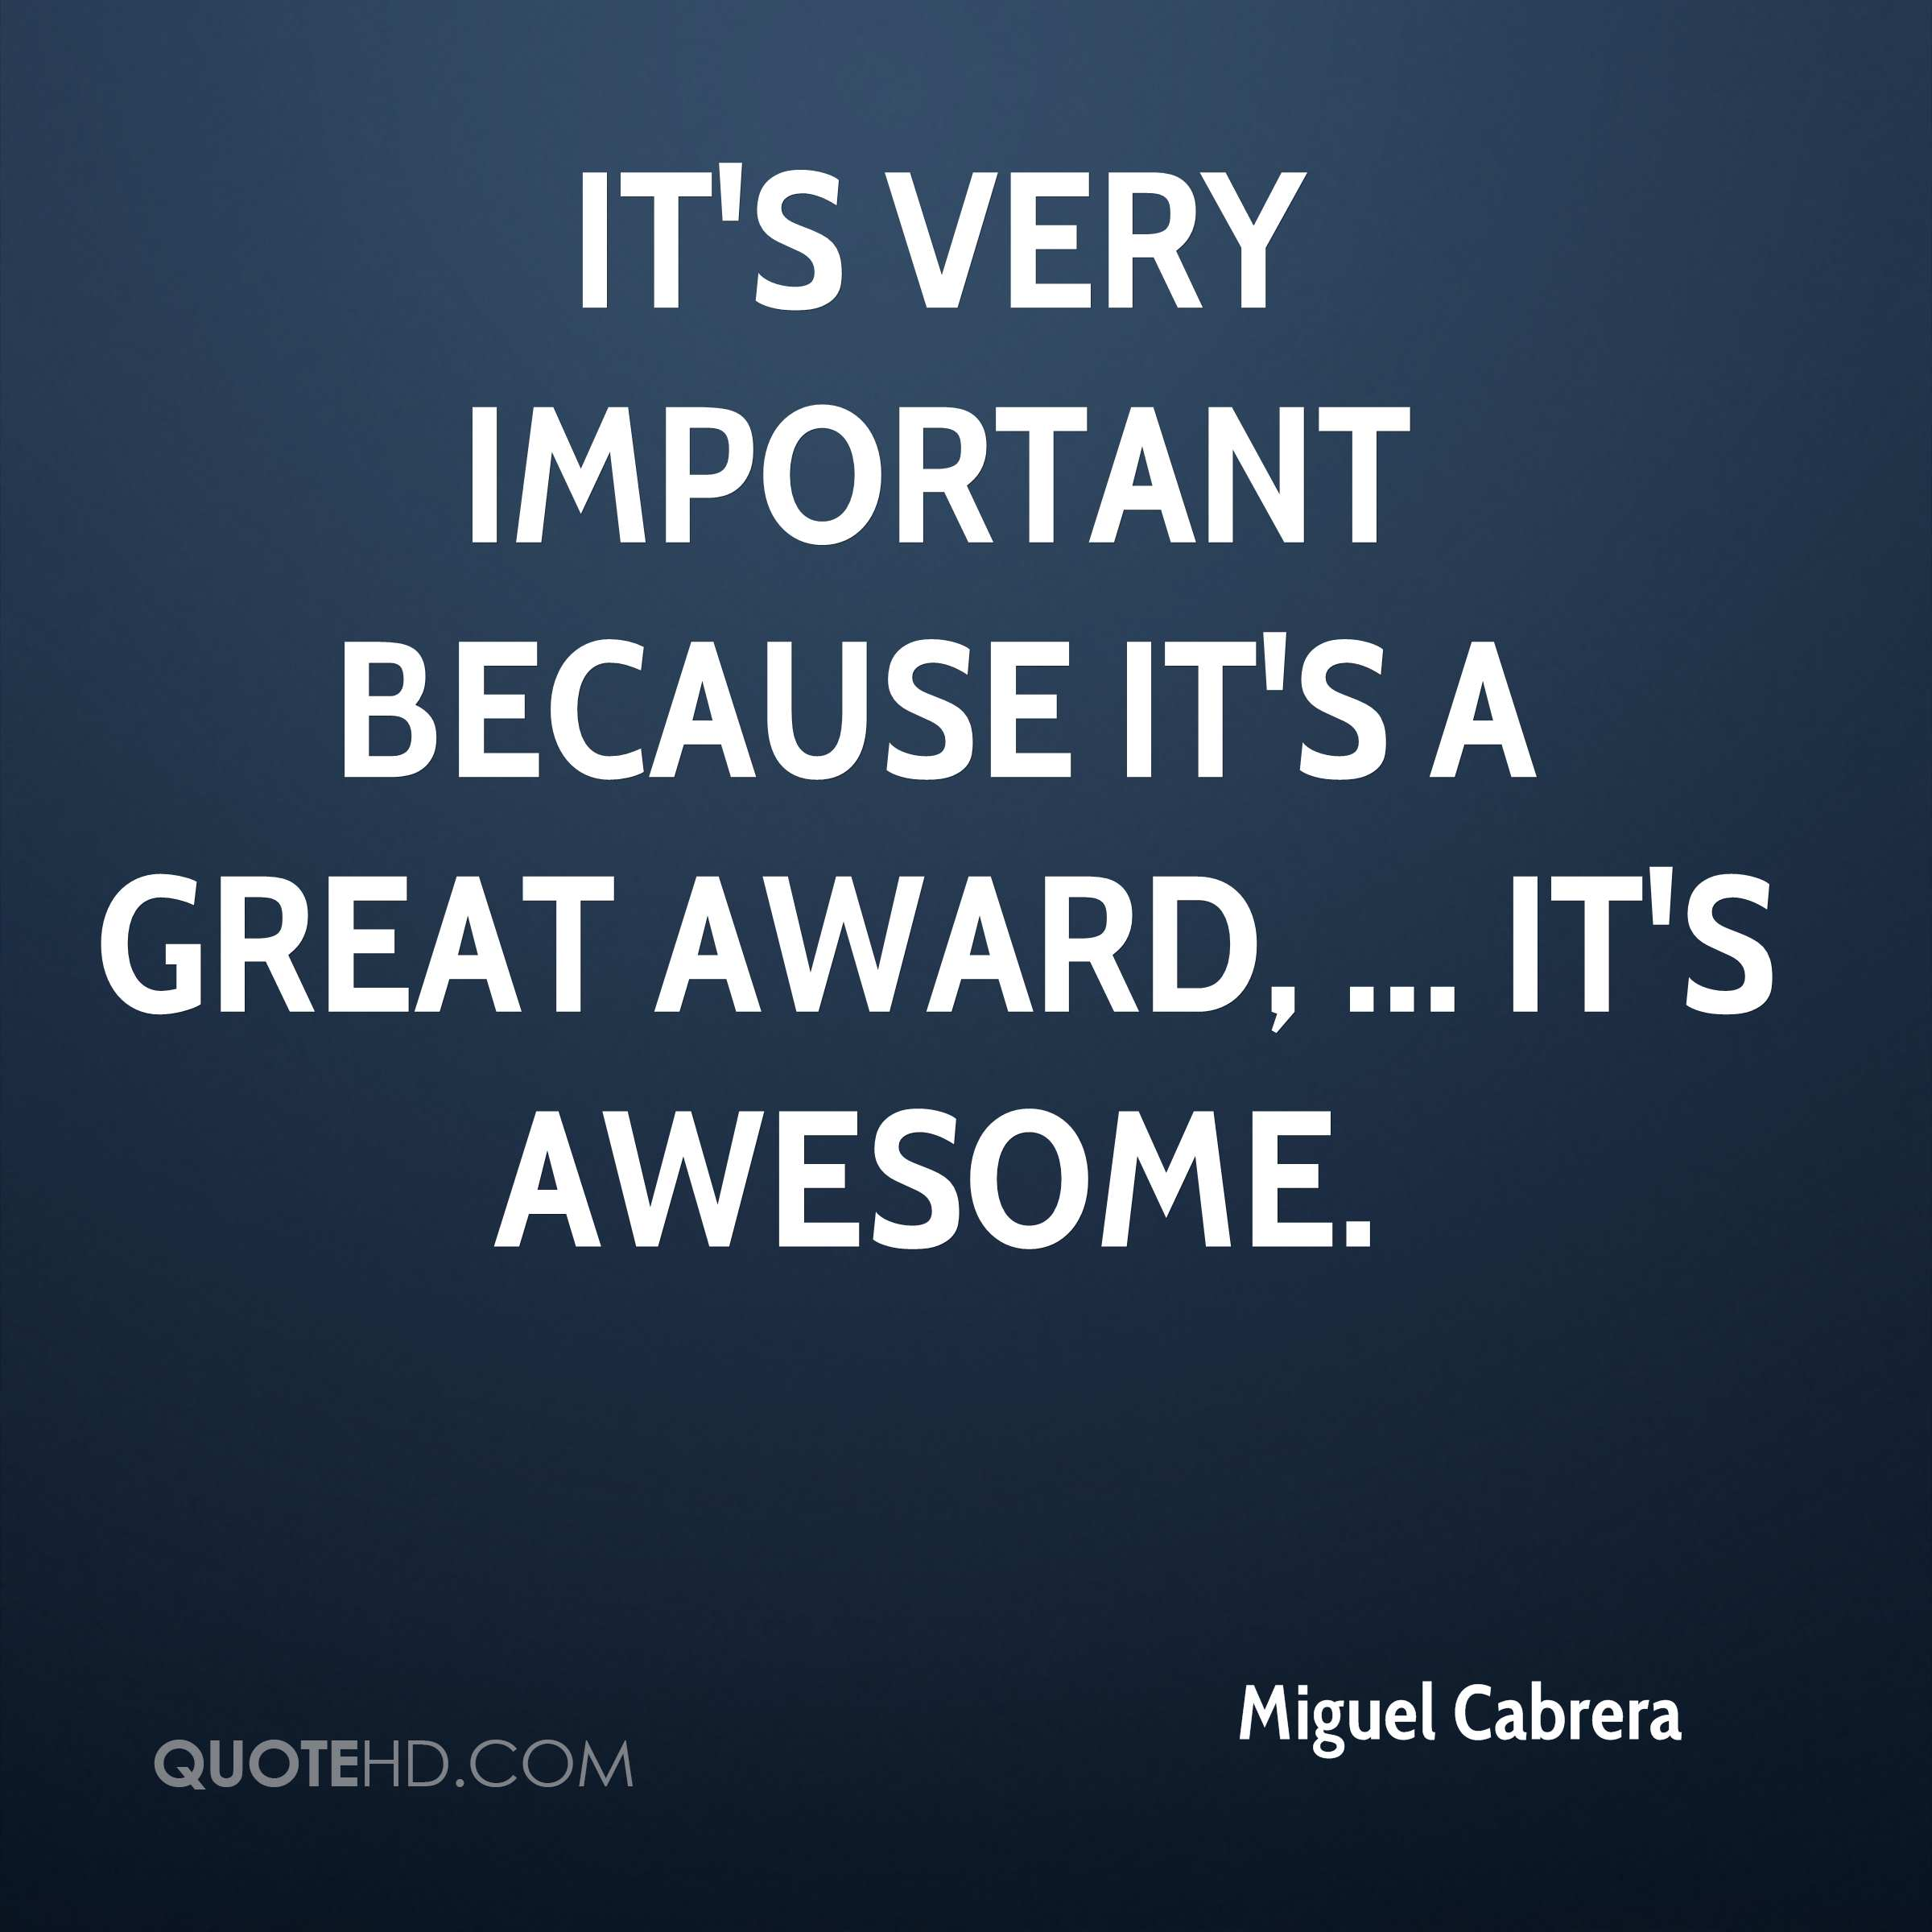 It's very important because it's a great award, ... It's awesome.